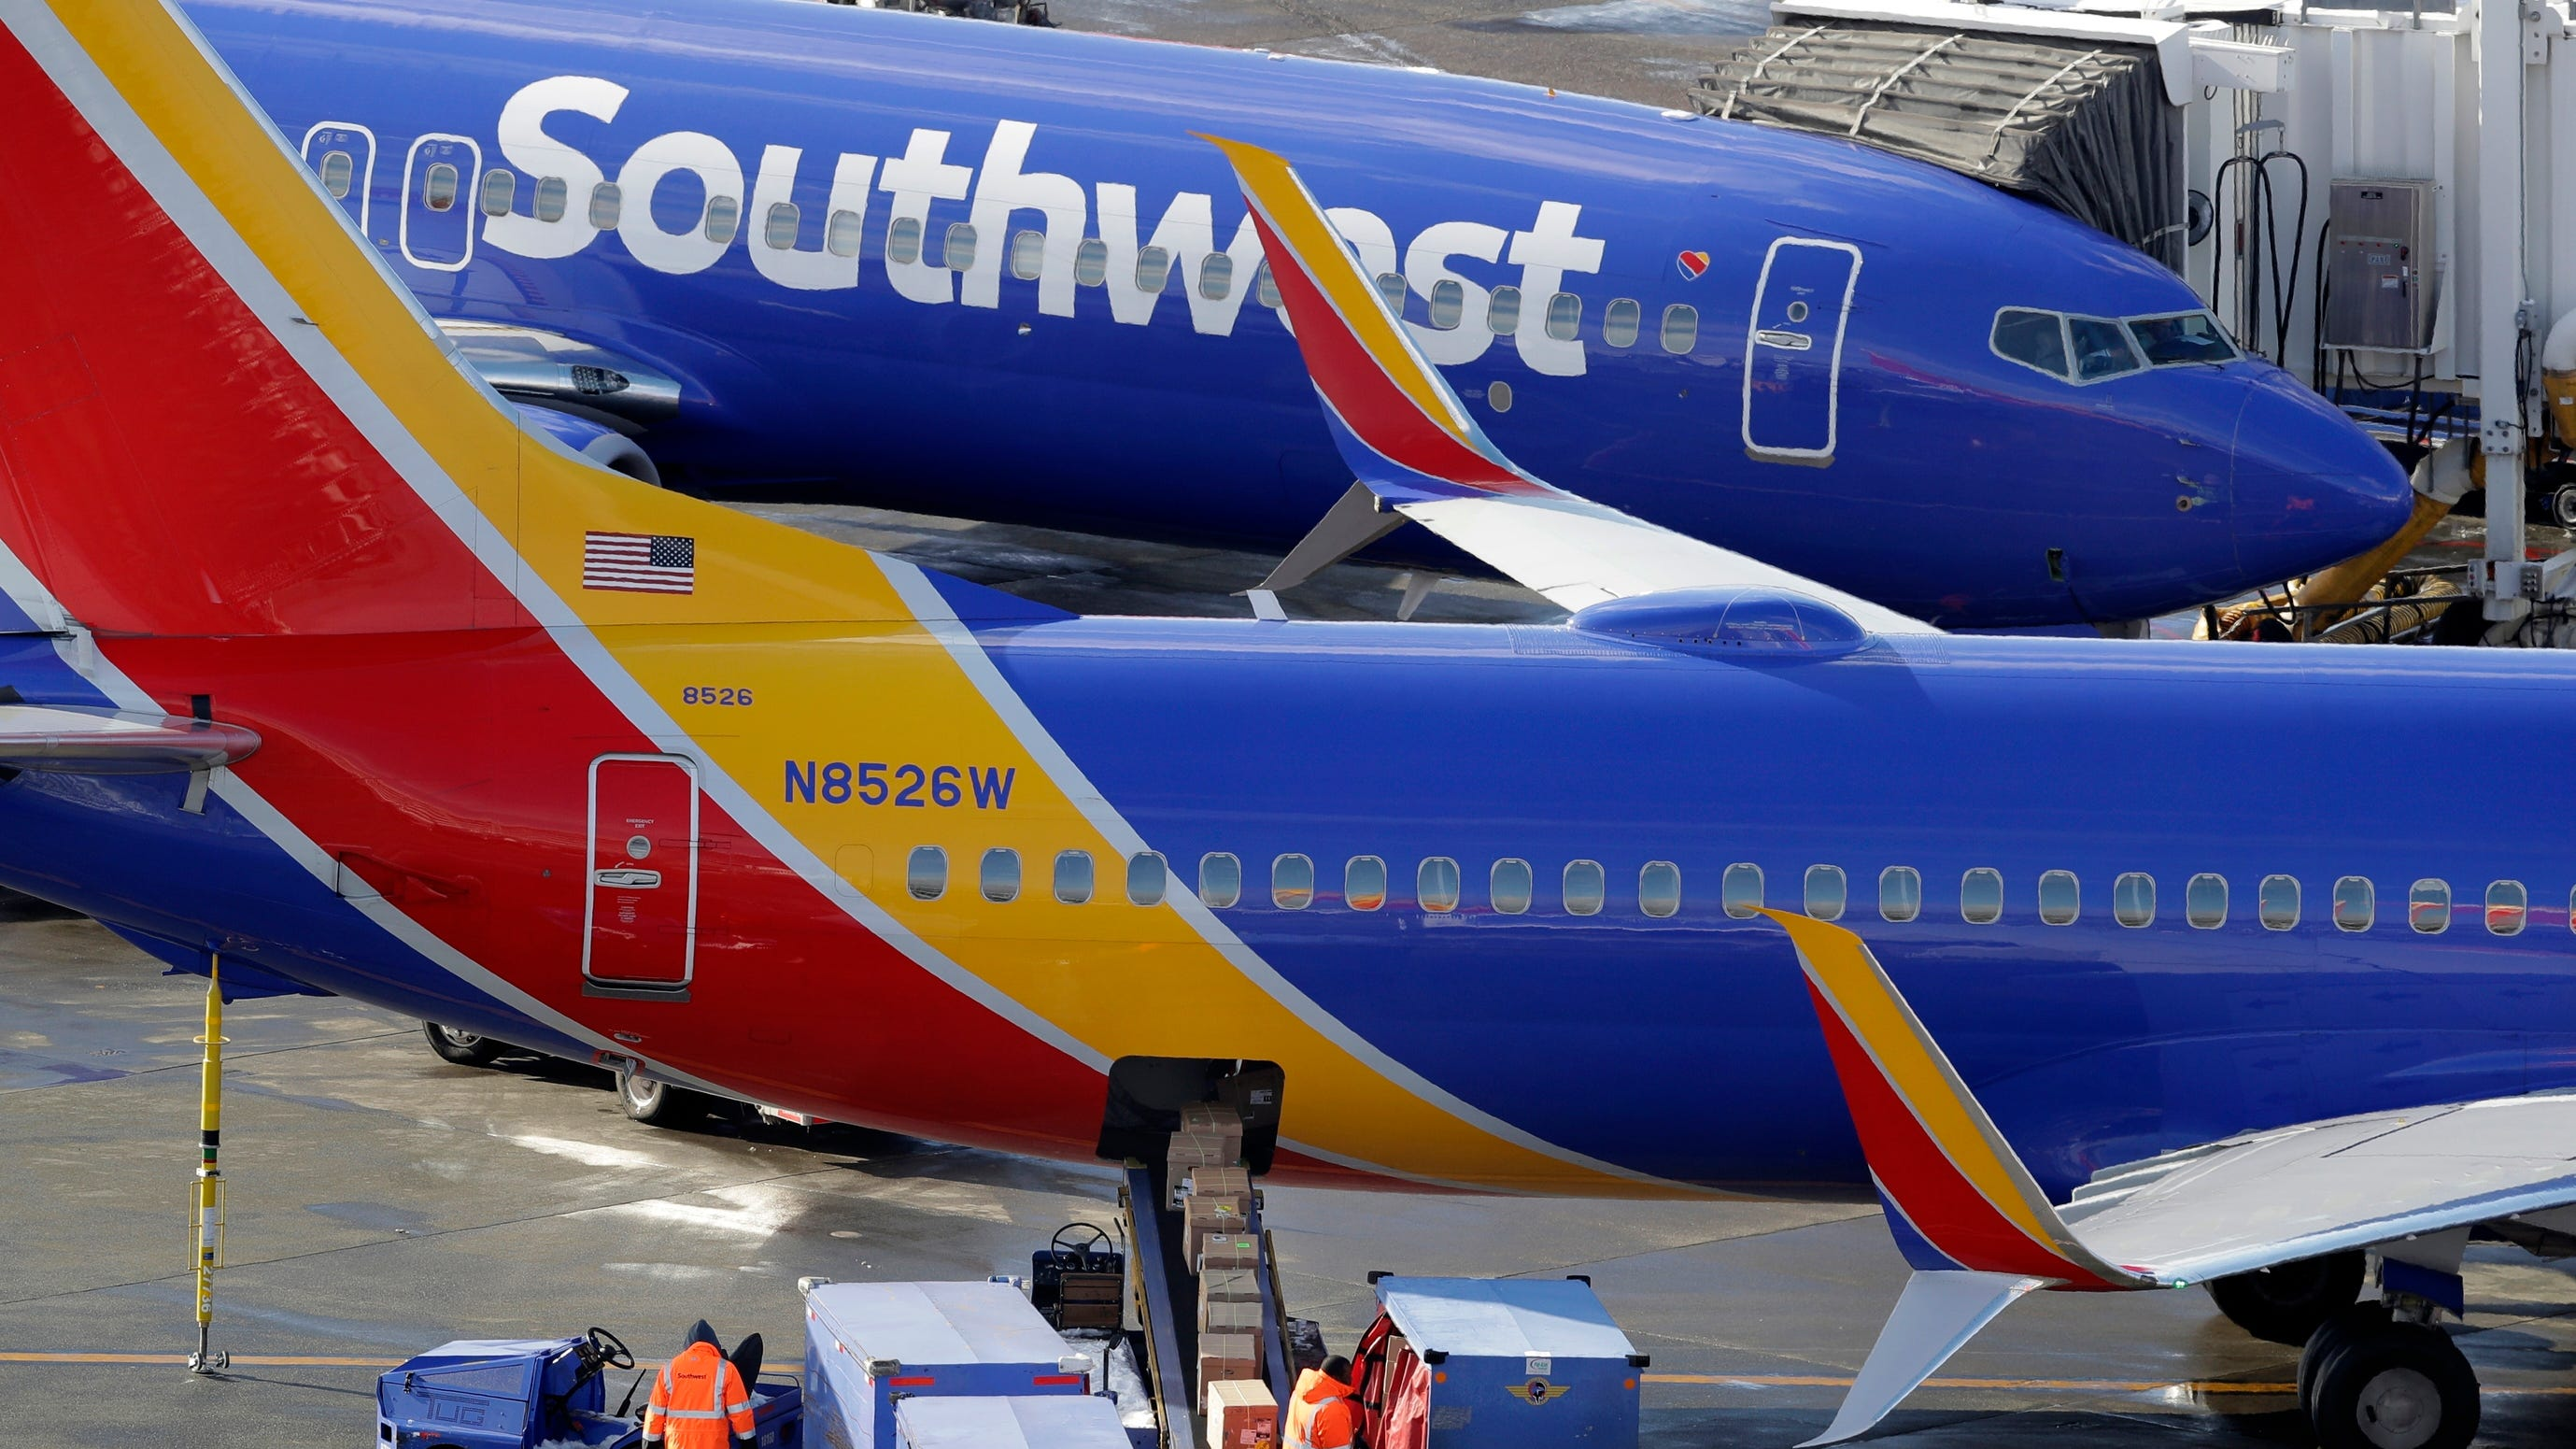 Southwest Airlines Fall Fare Sale Launches With 39 One Way Flights